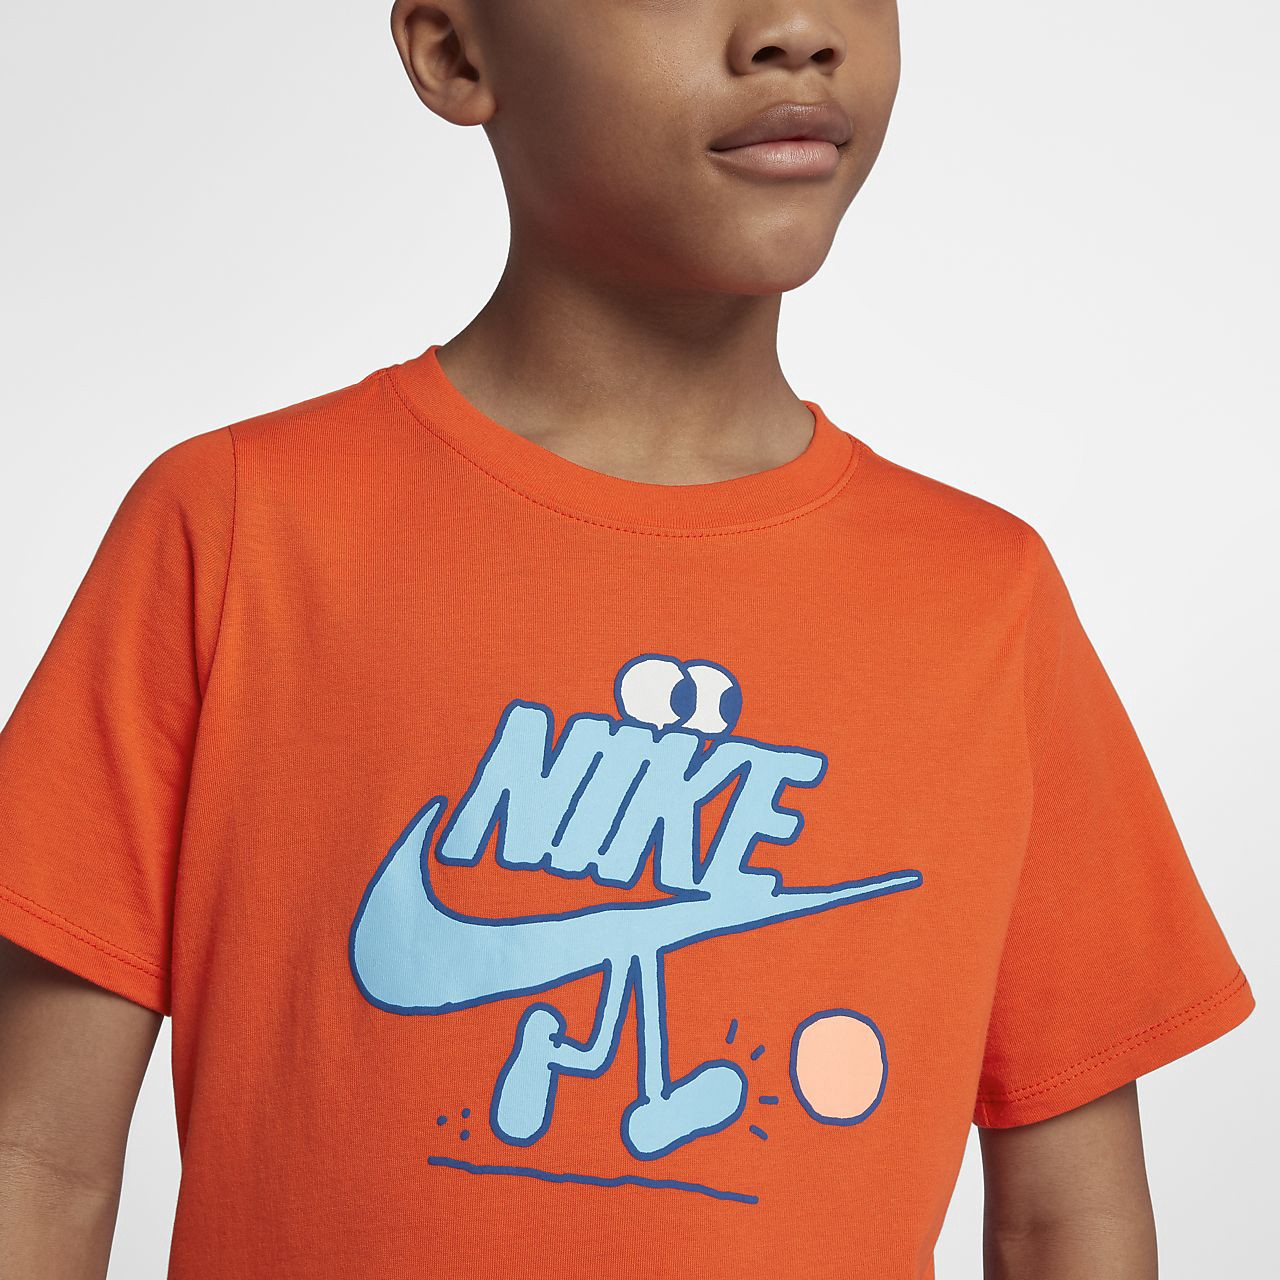 8f206683eeb Nike Sportswear Big Kids  (Boys ) T-Shirt - M (10-12) Orange ...